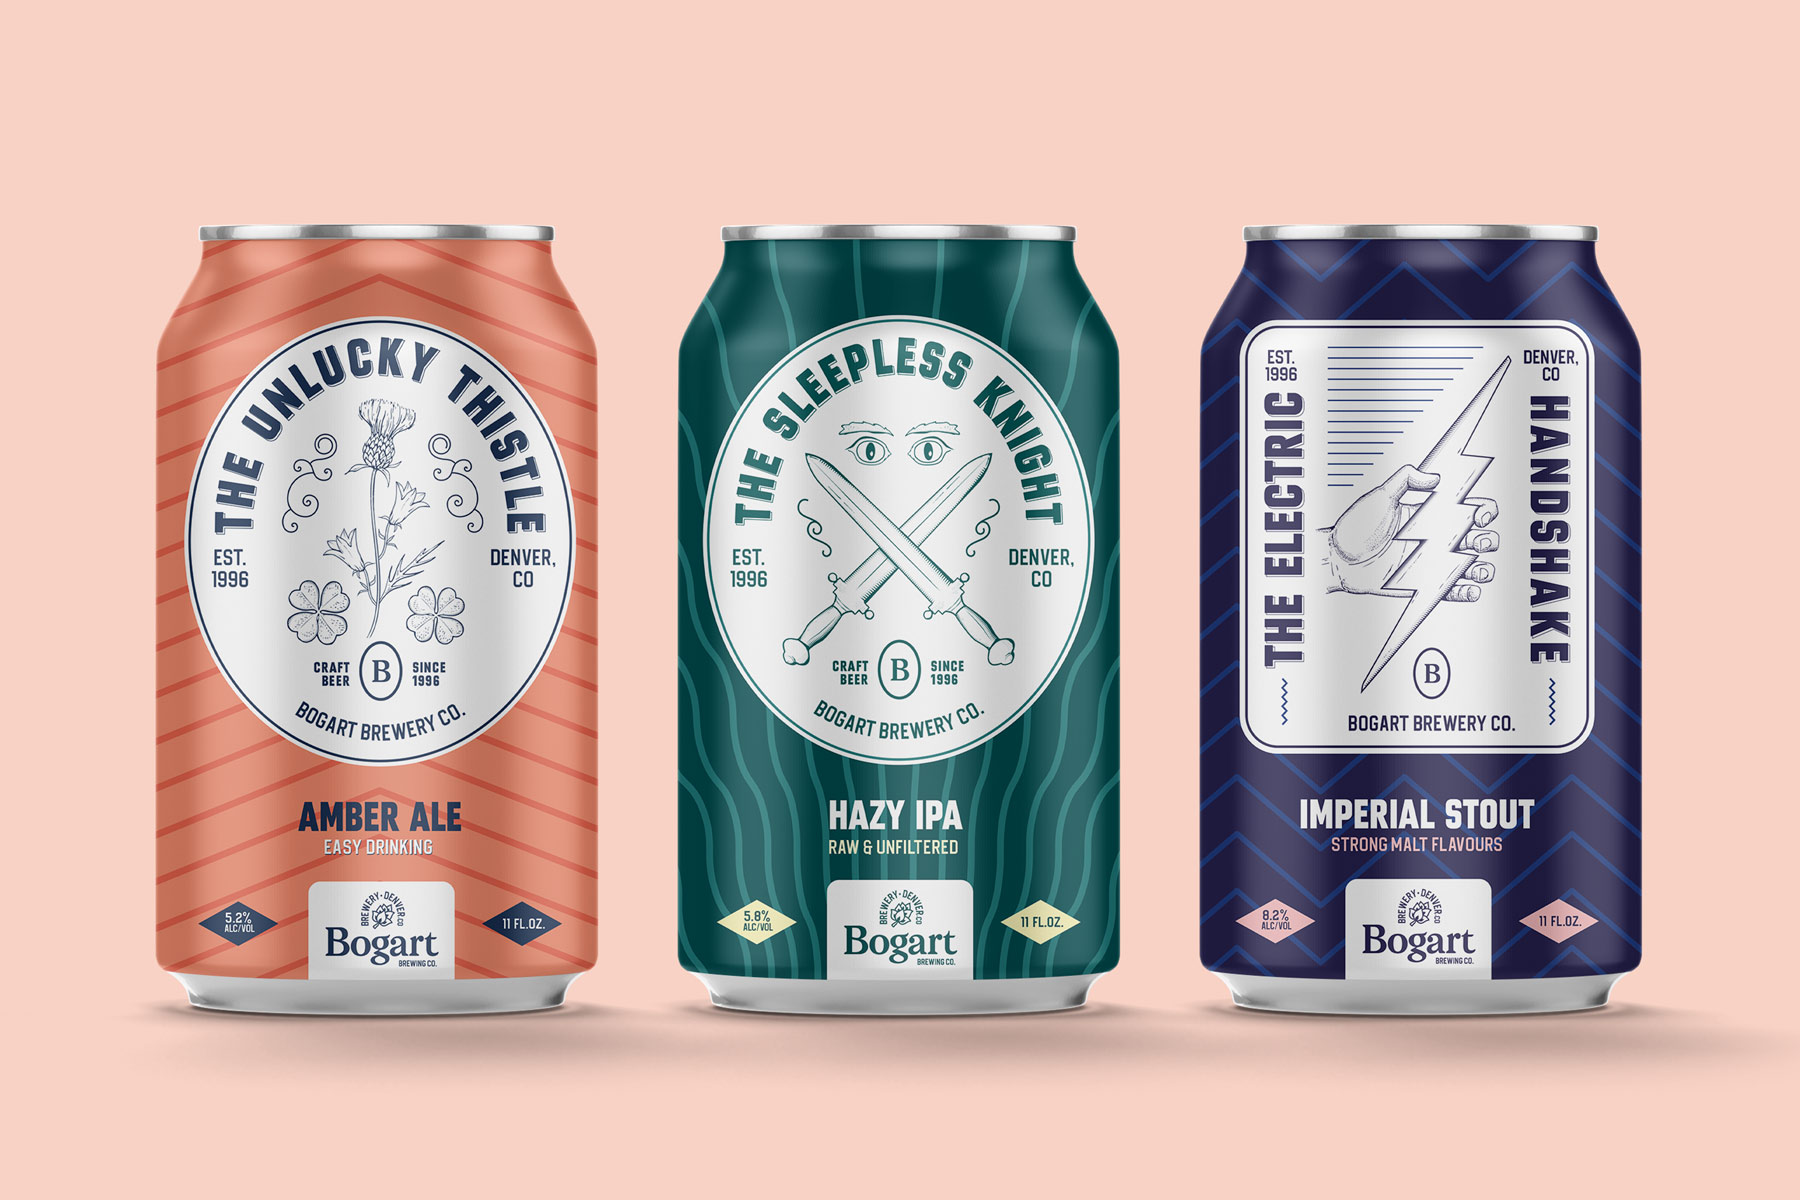 Family Owned Bogart Brewery Brand Identity Created by Kalistostudio